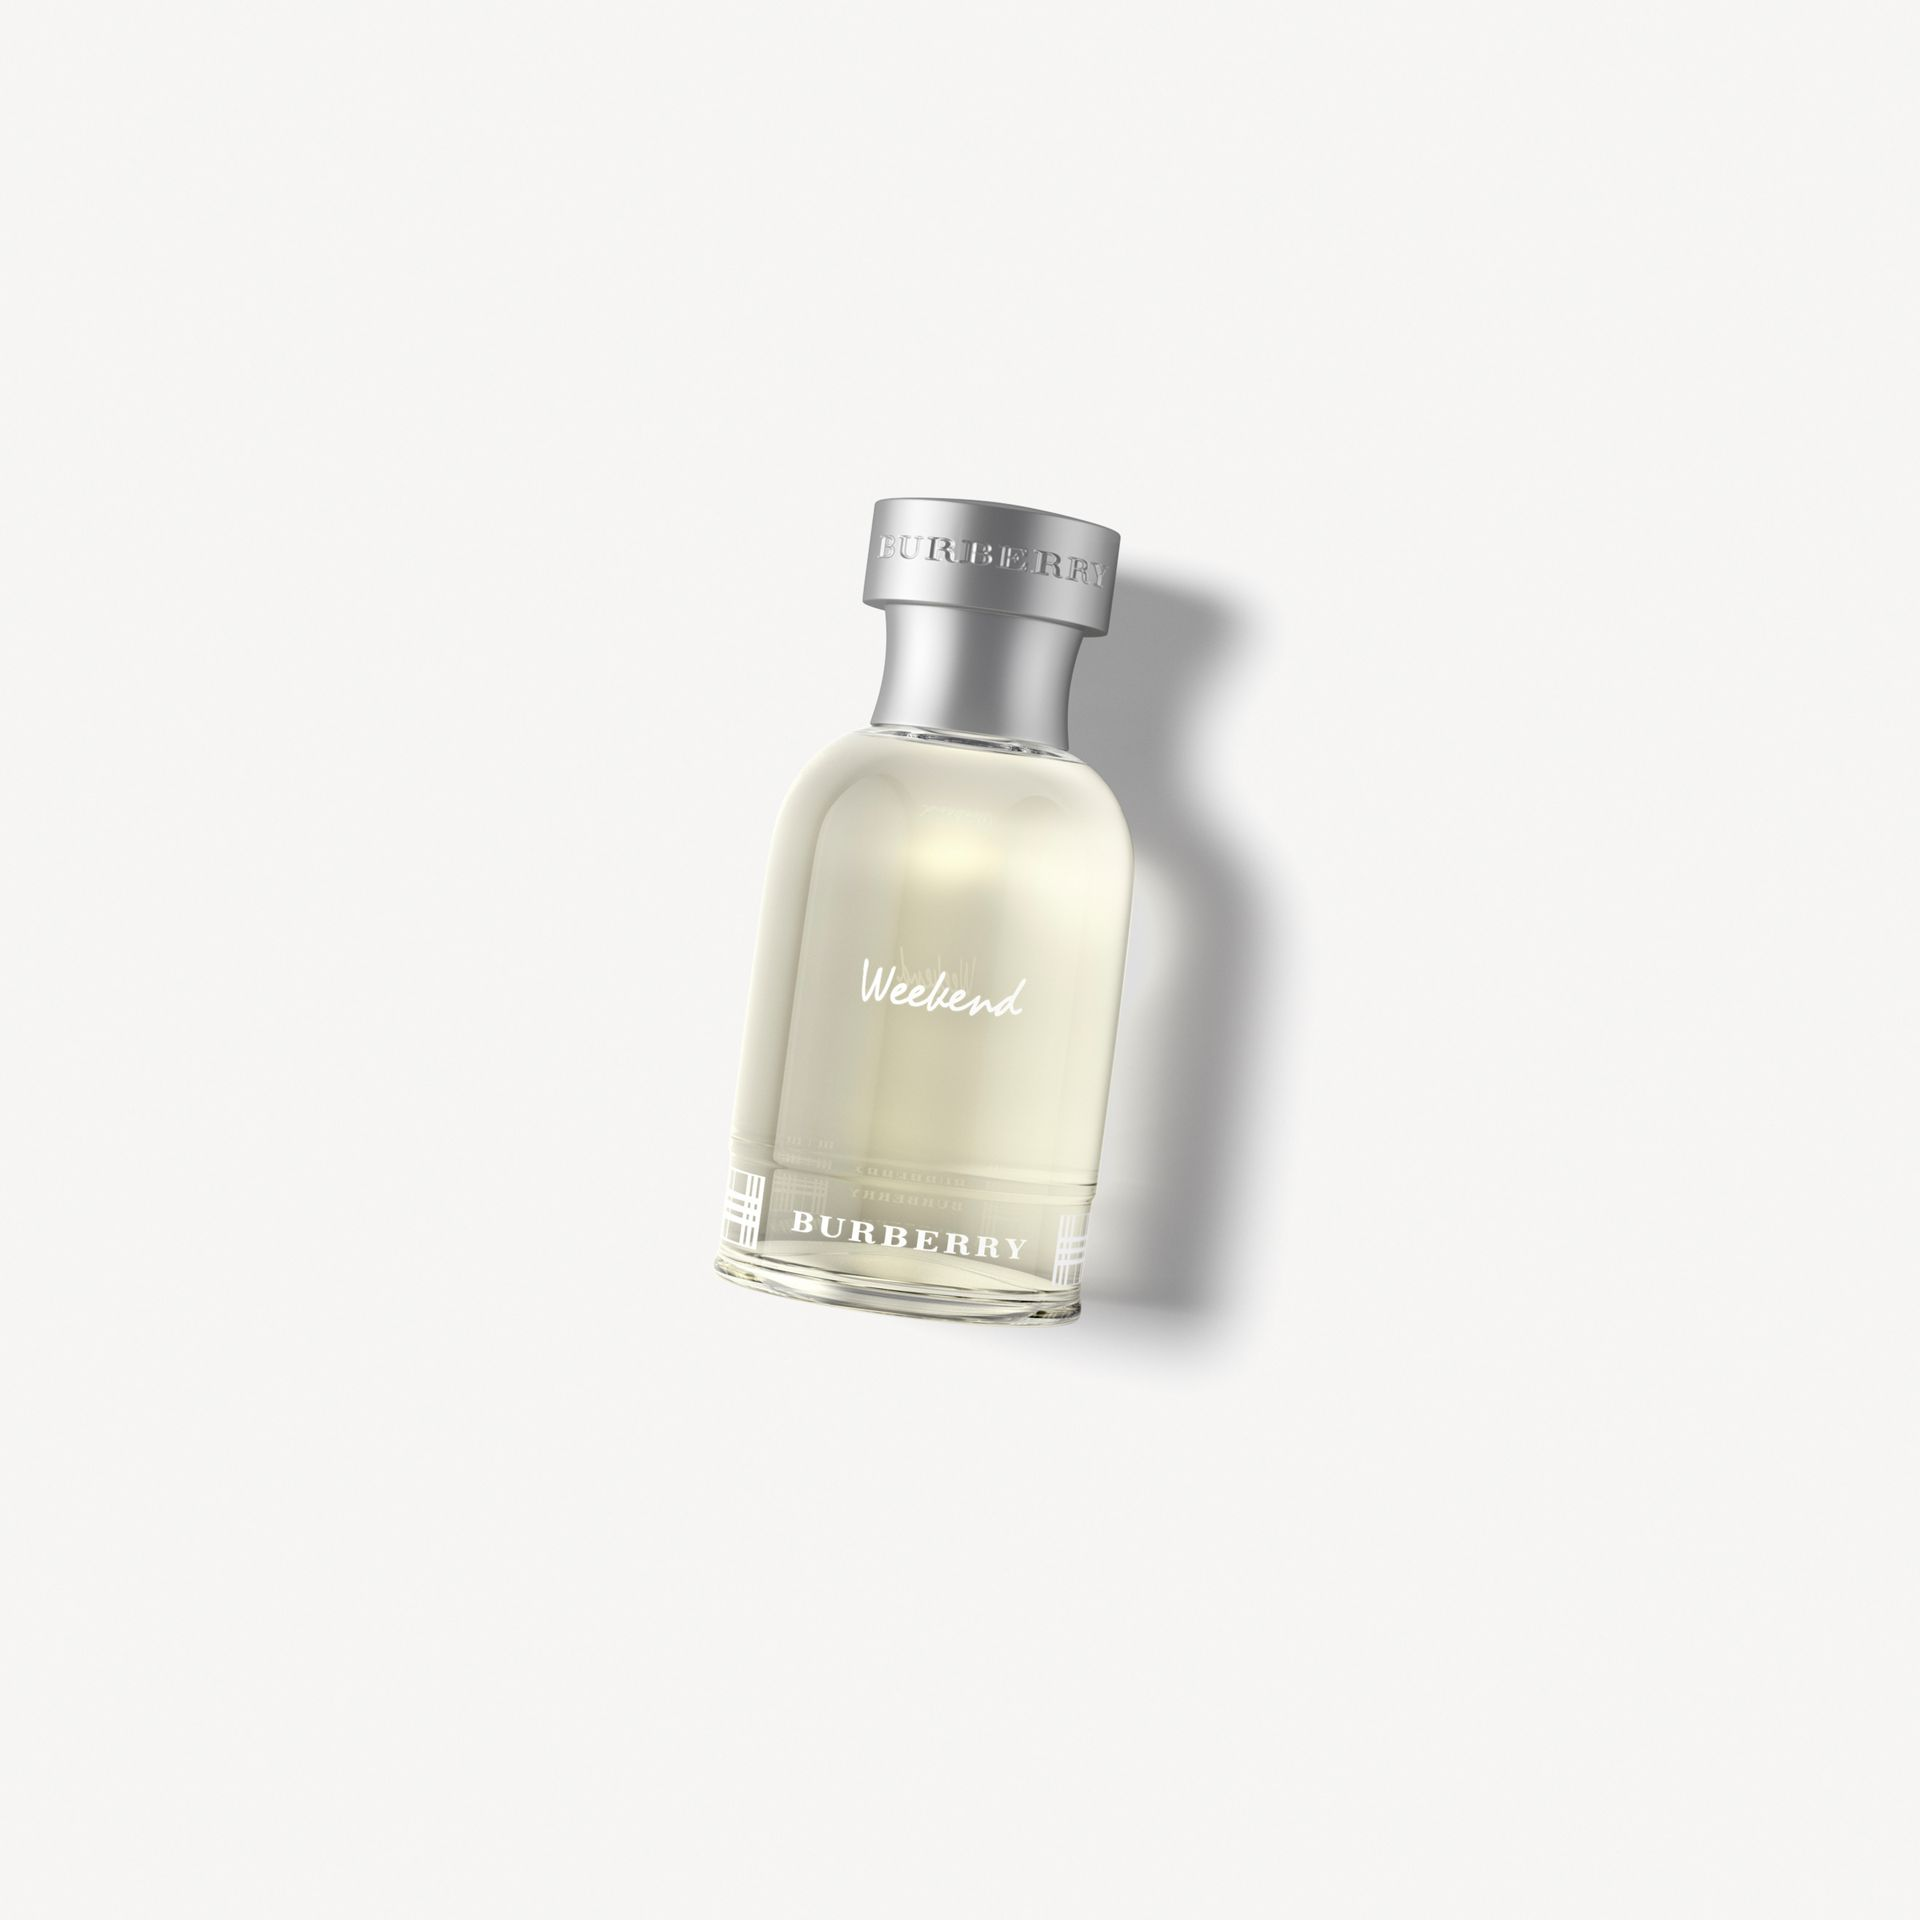 Burberry Weekend Eau de Toilette 50ml - Men | Burberry Australia - gallery image 1